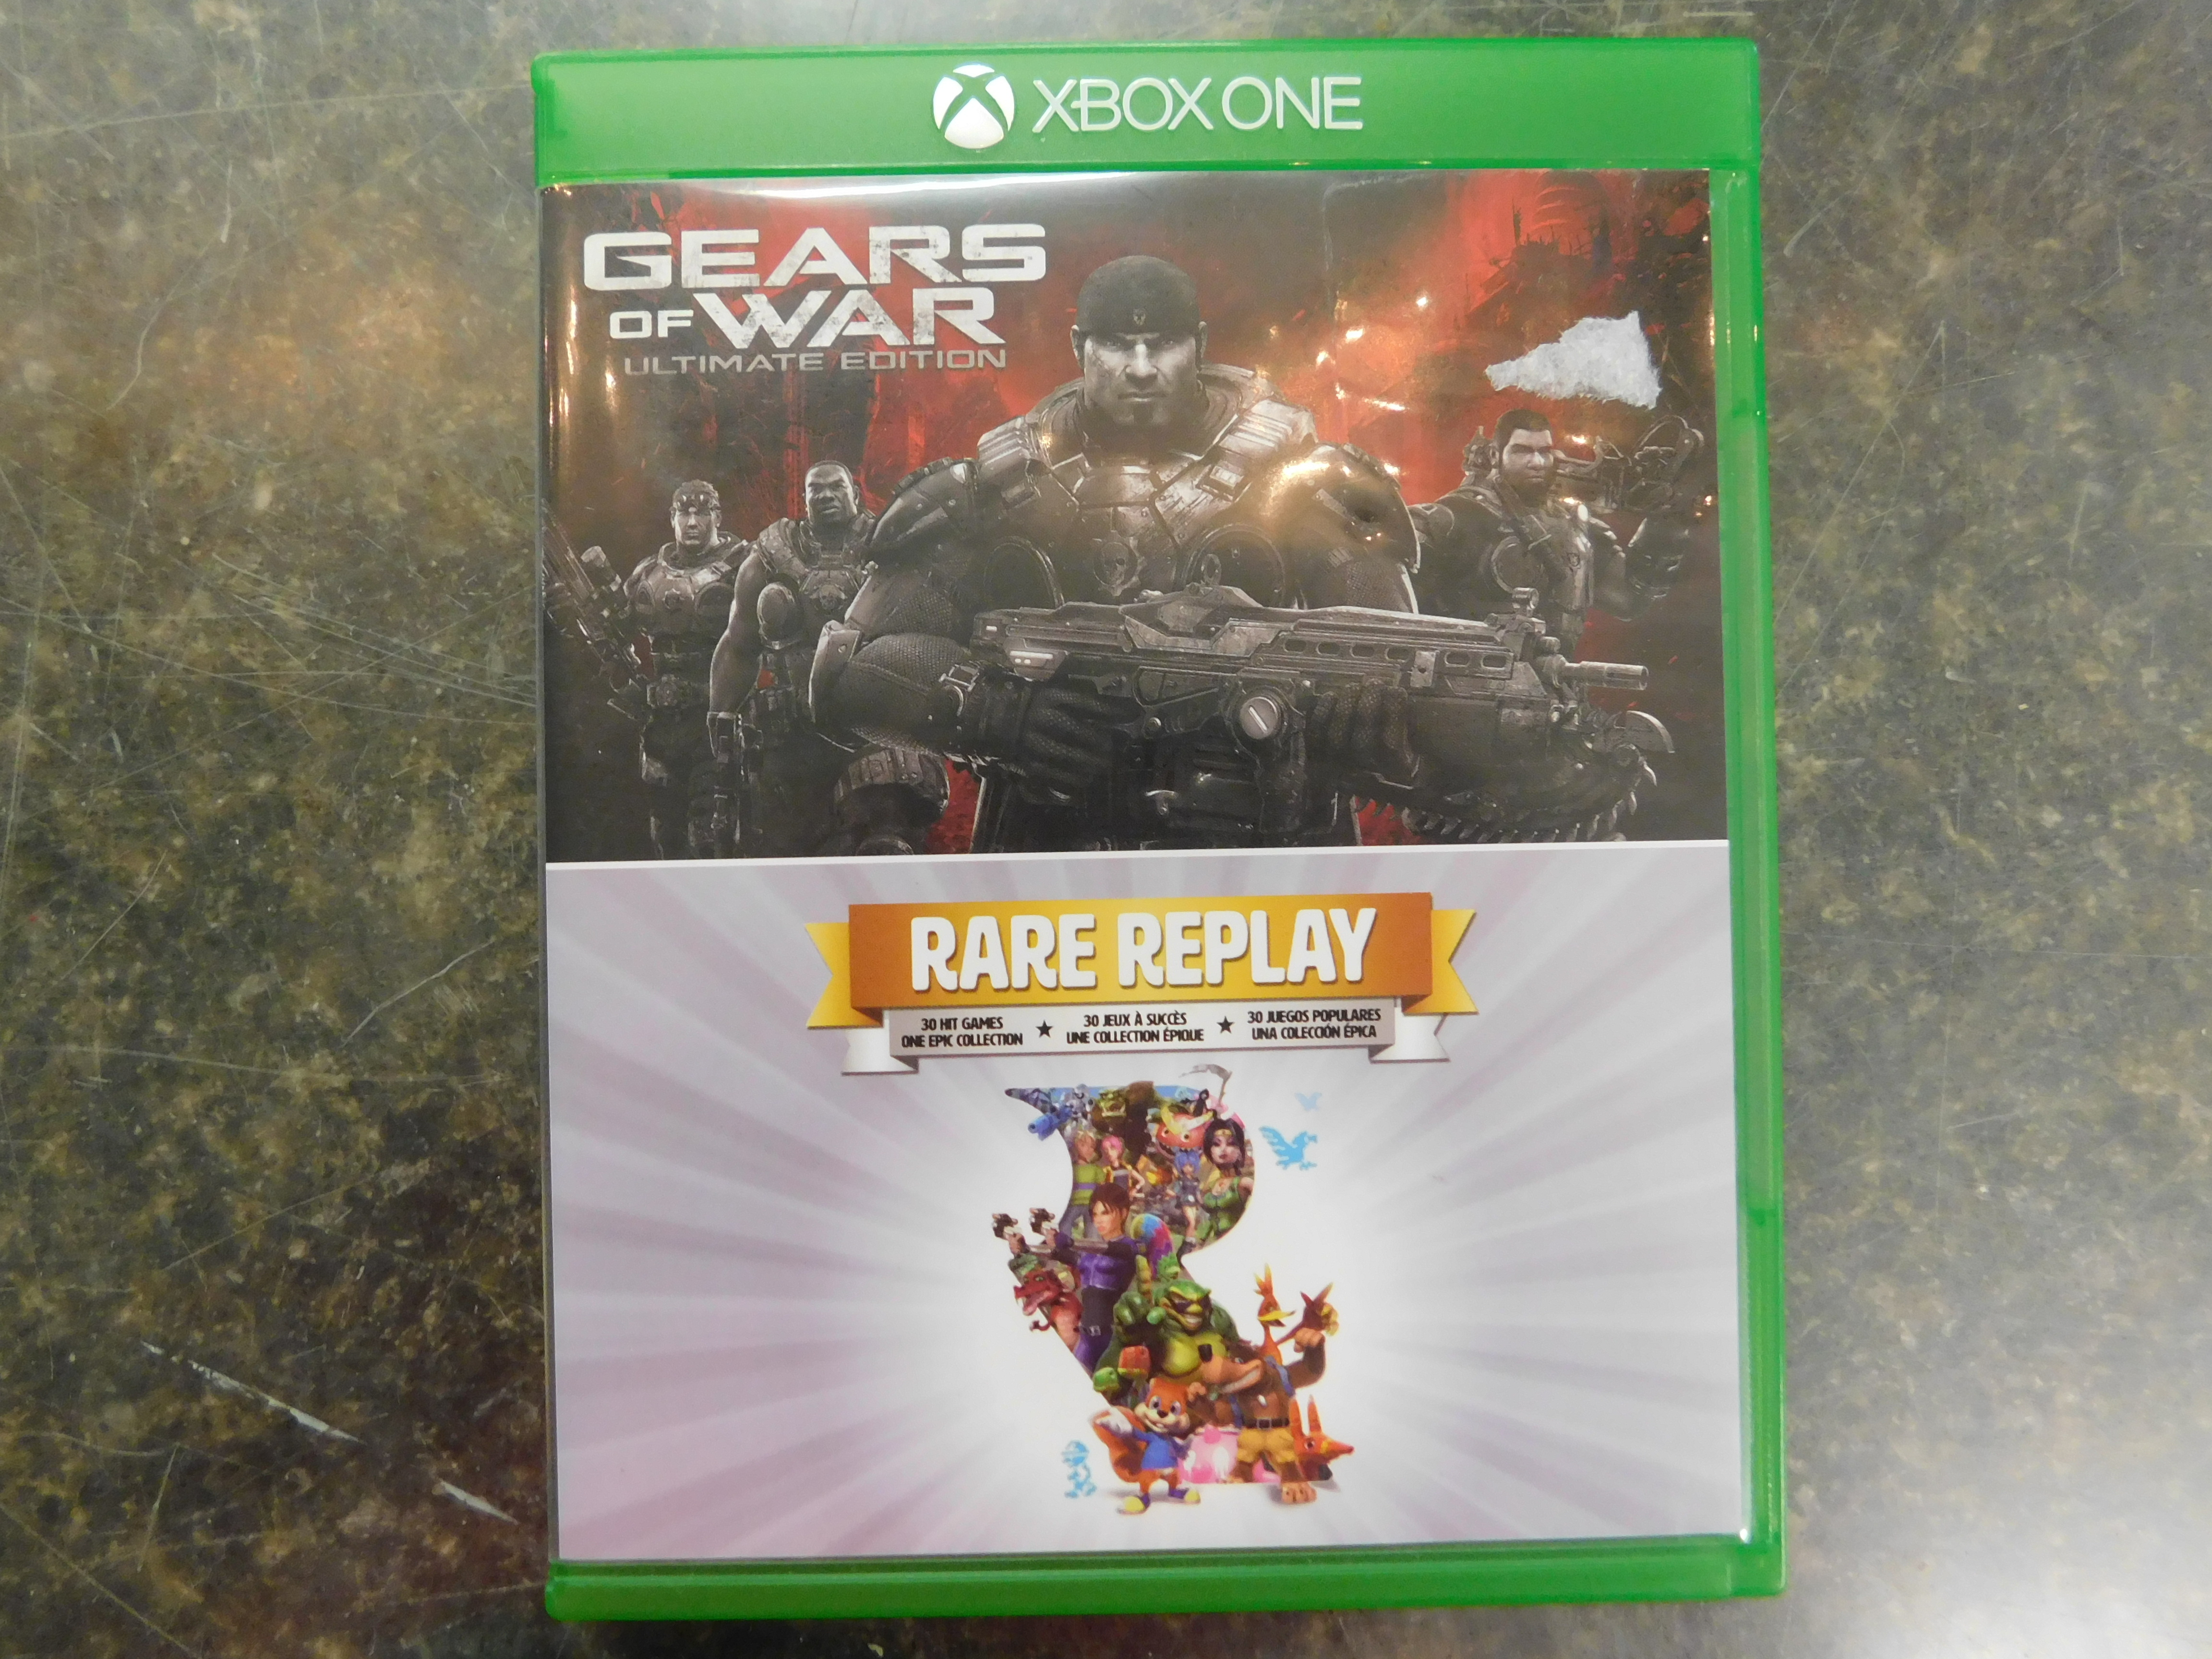 GEARS OF WAR/ RARE REPLAY XBOX ONE GAME